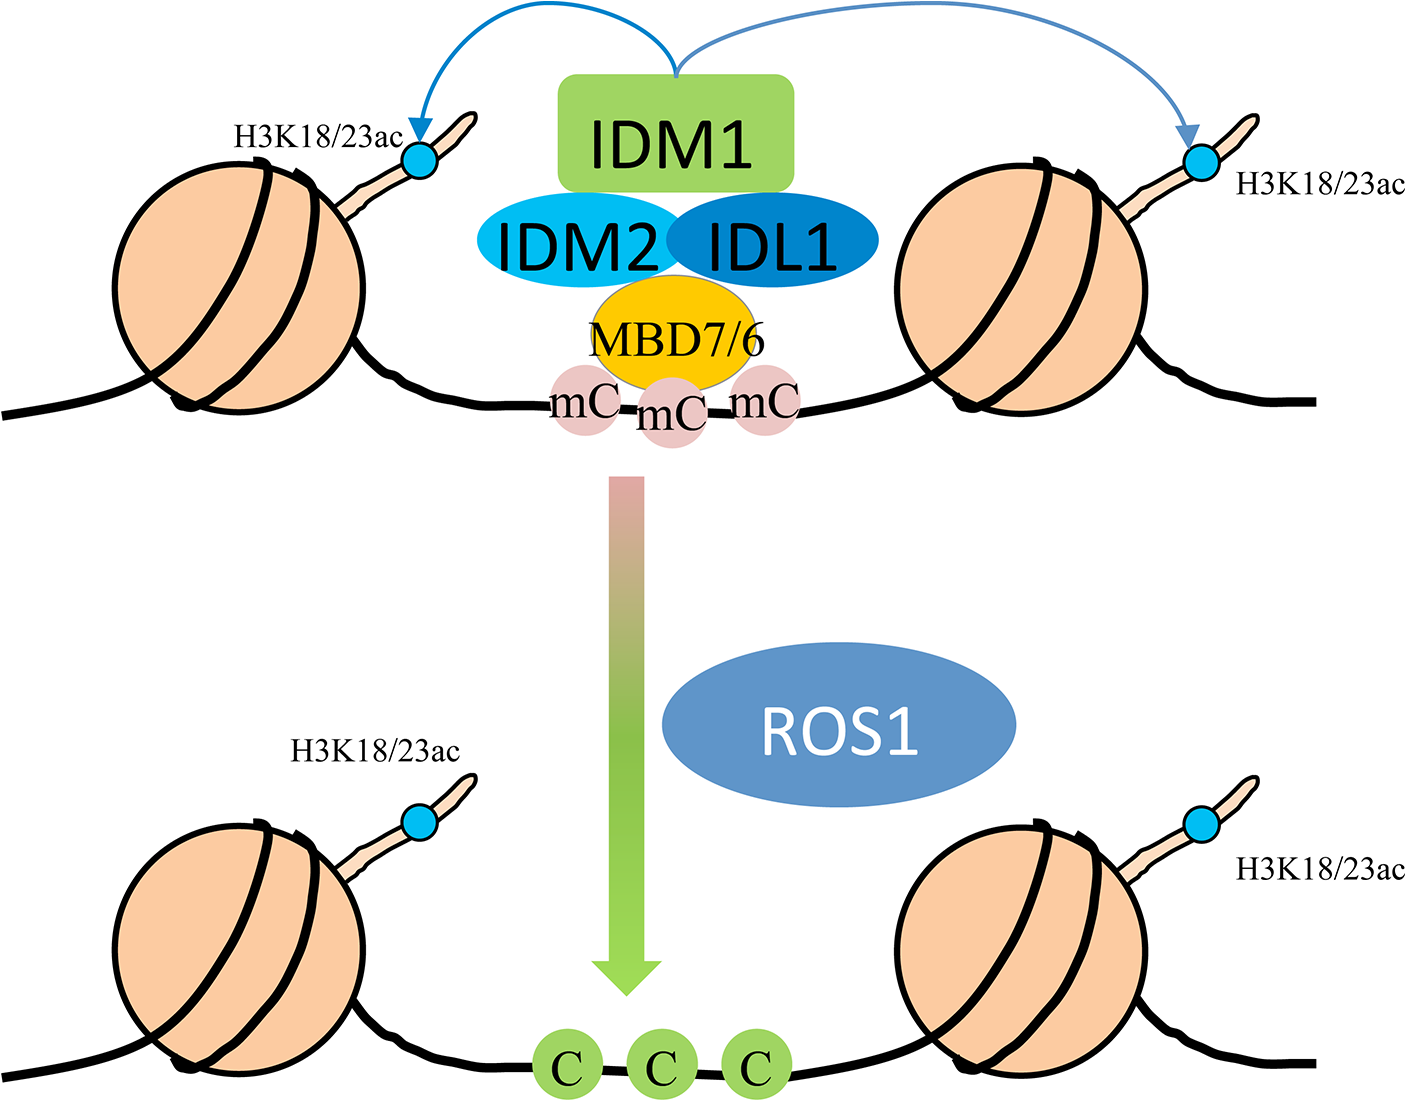 Working model for the IDM1-IDM2-IDL1-MBD7 complex functioning in ROS1 mediated active DNA demethylation at some loci in <i>Arabidopsis</i>.